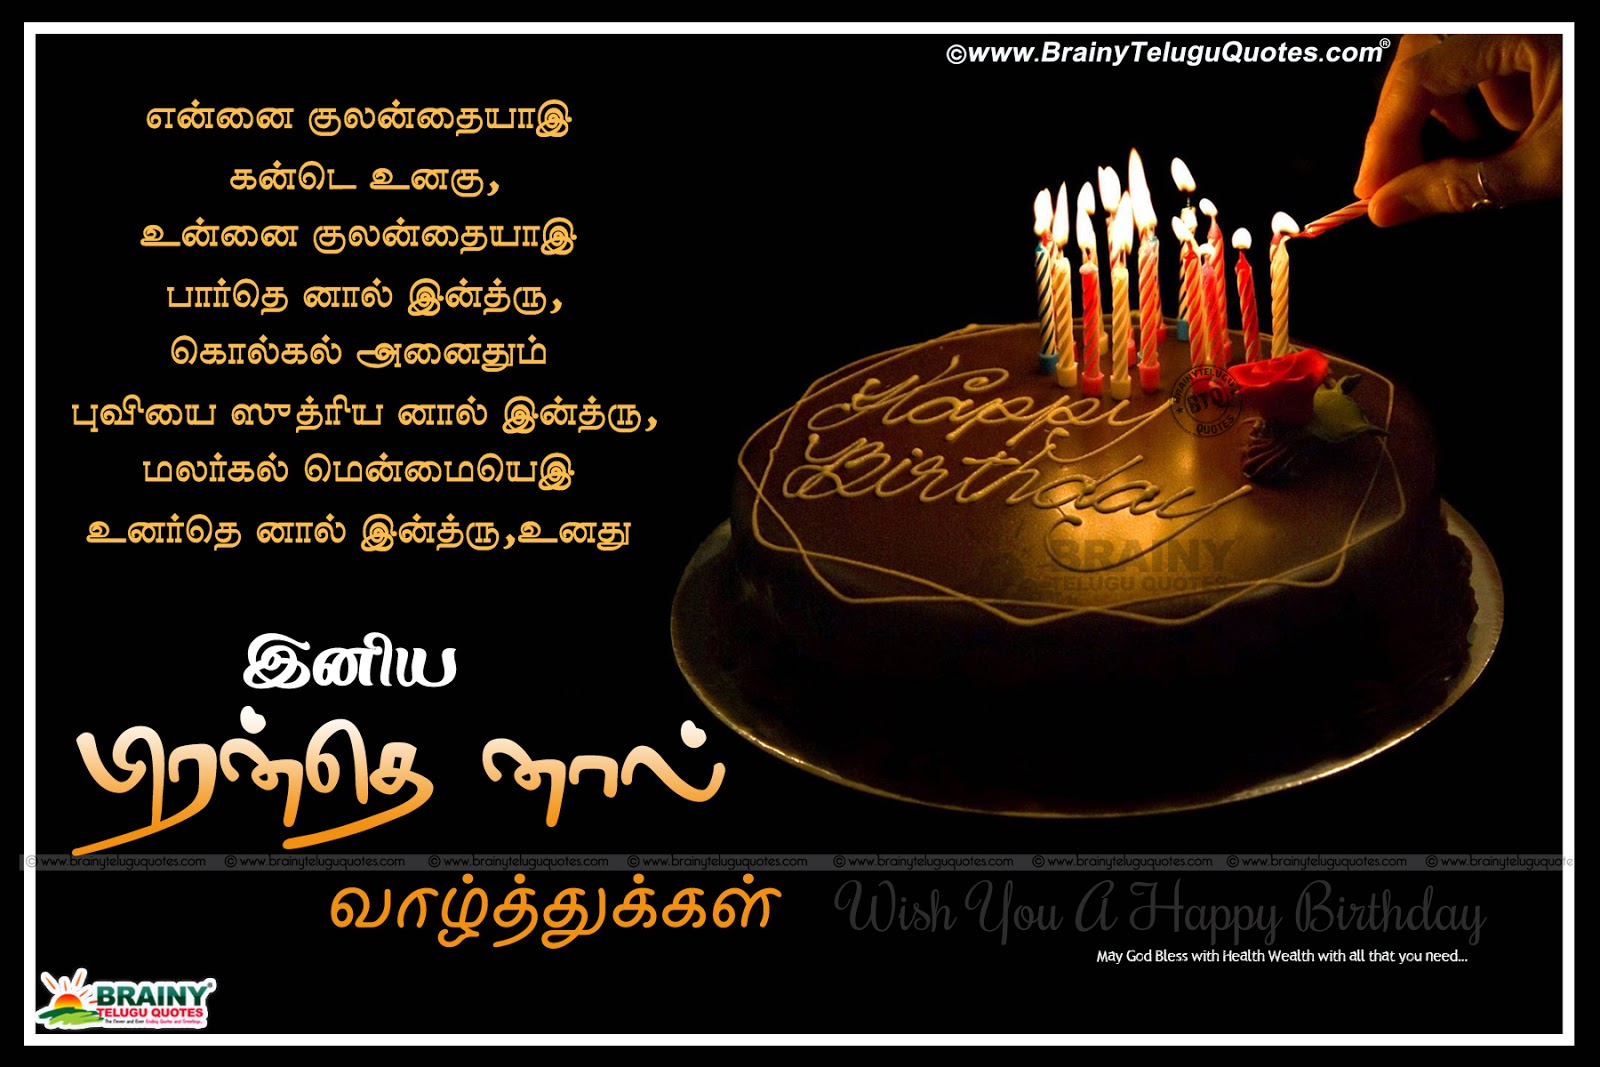 Birthday Images For Brother In Tamil Imaganationfaceorg